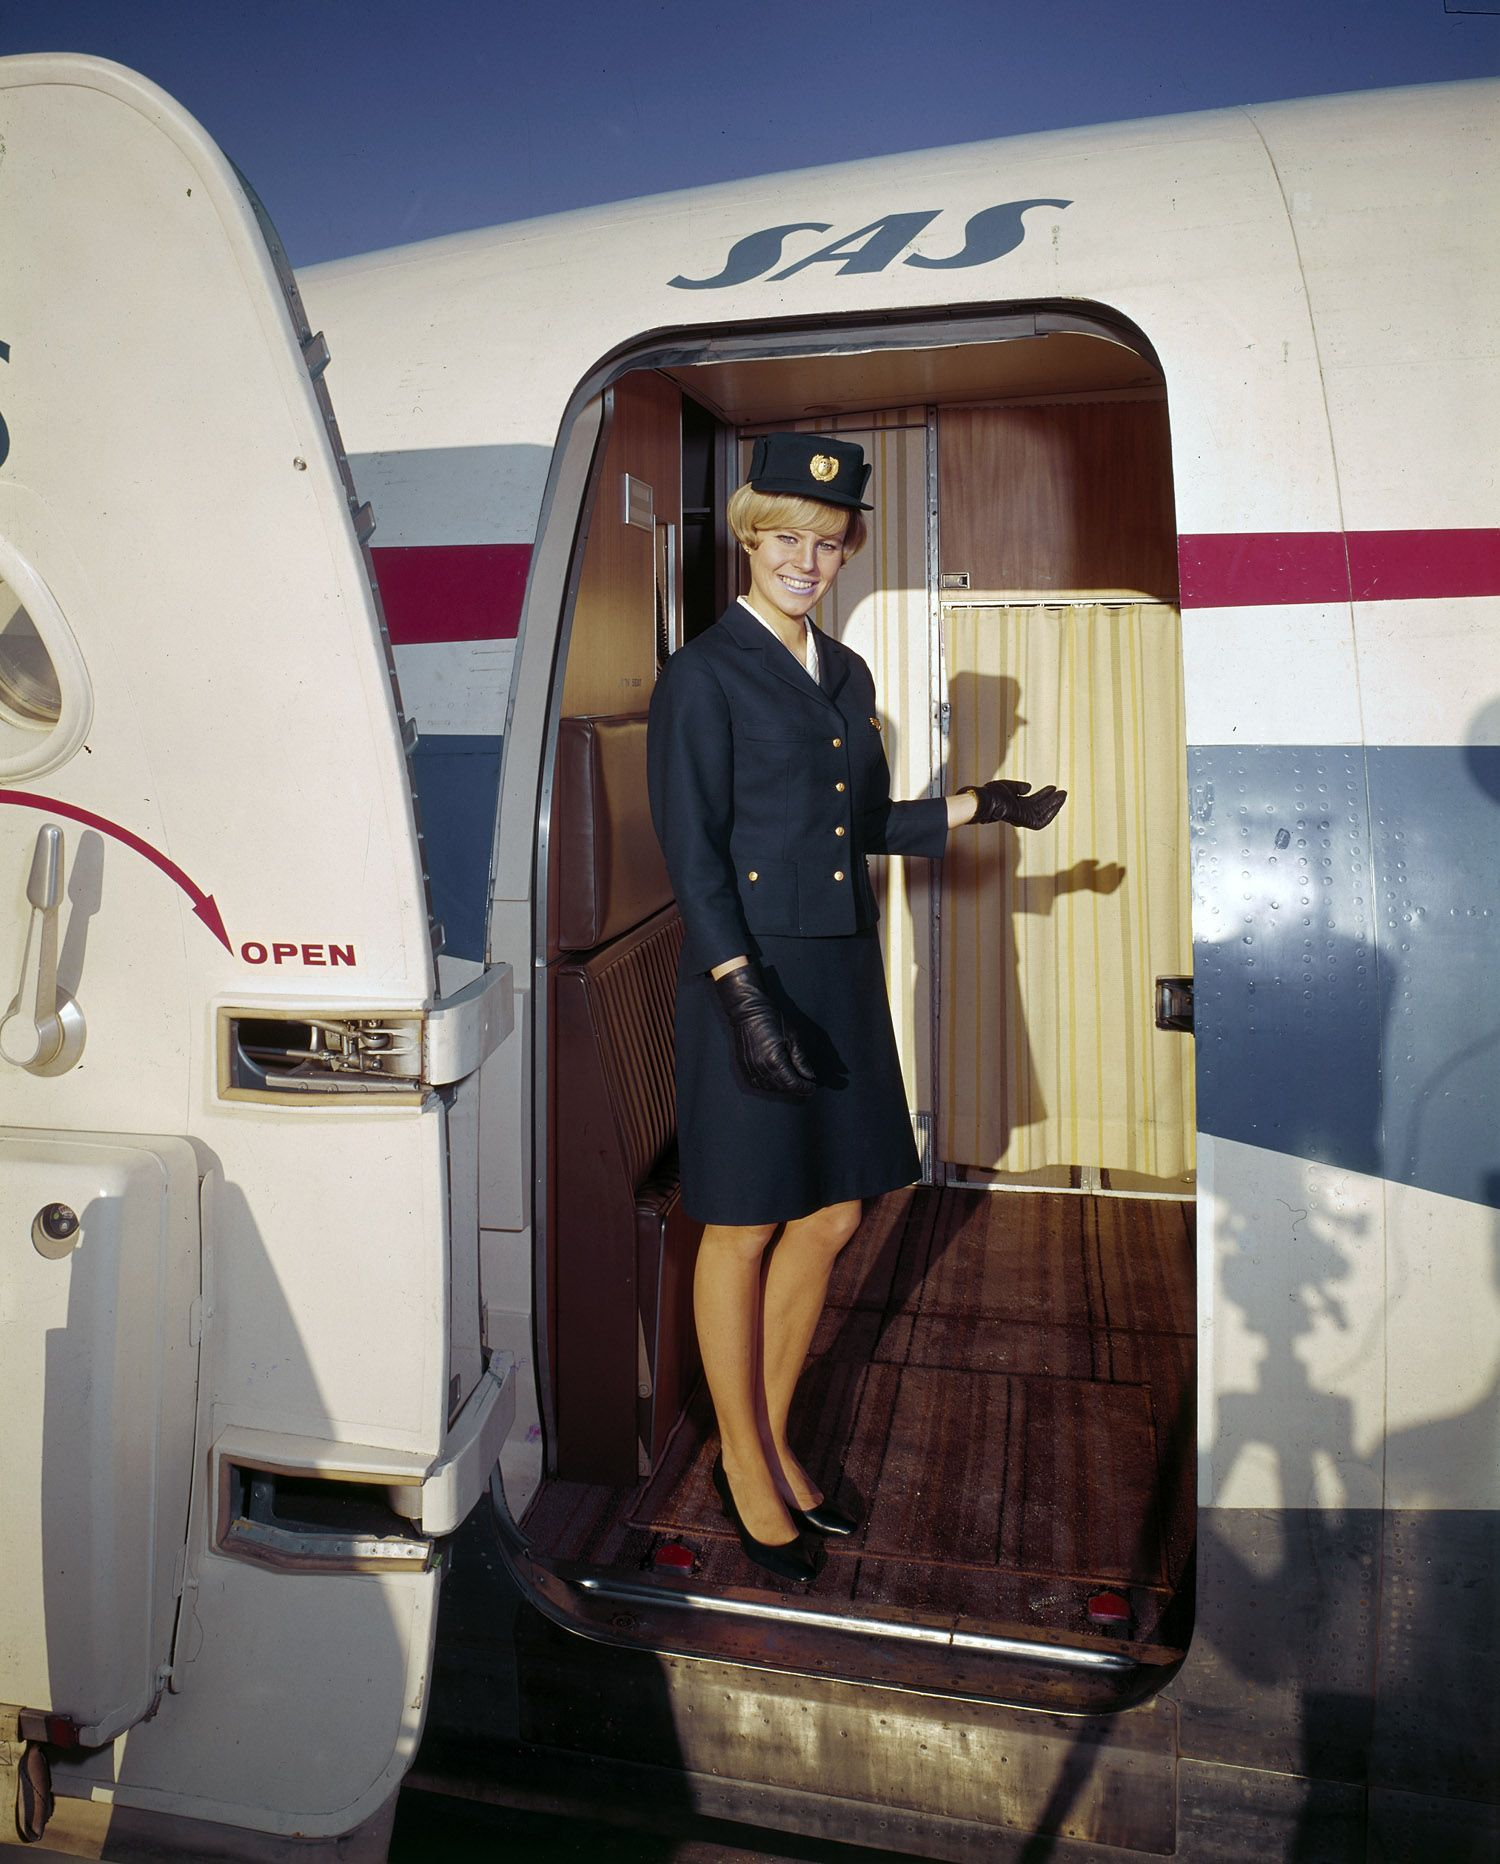 Welcome To The Jet Age Fly With Sas Aviationglamourairports Jet Age Flight Attendant Vintage Airlines